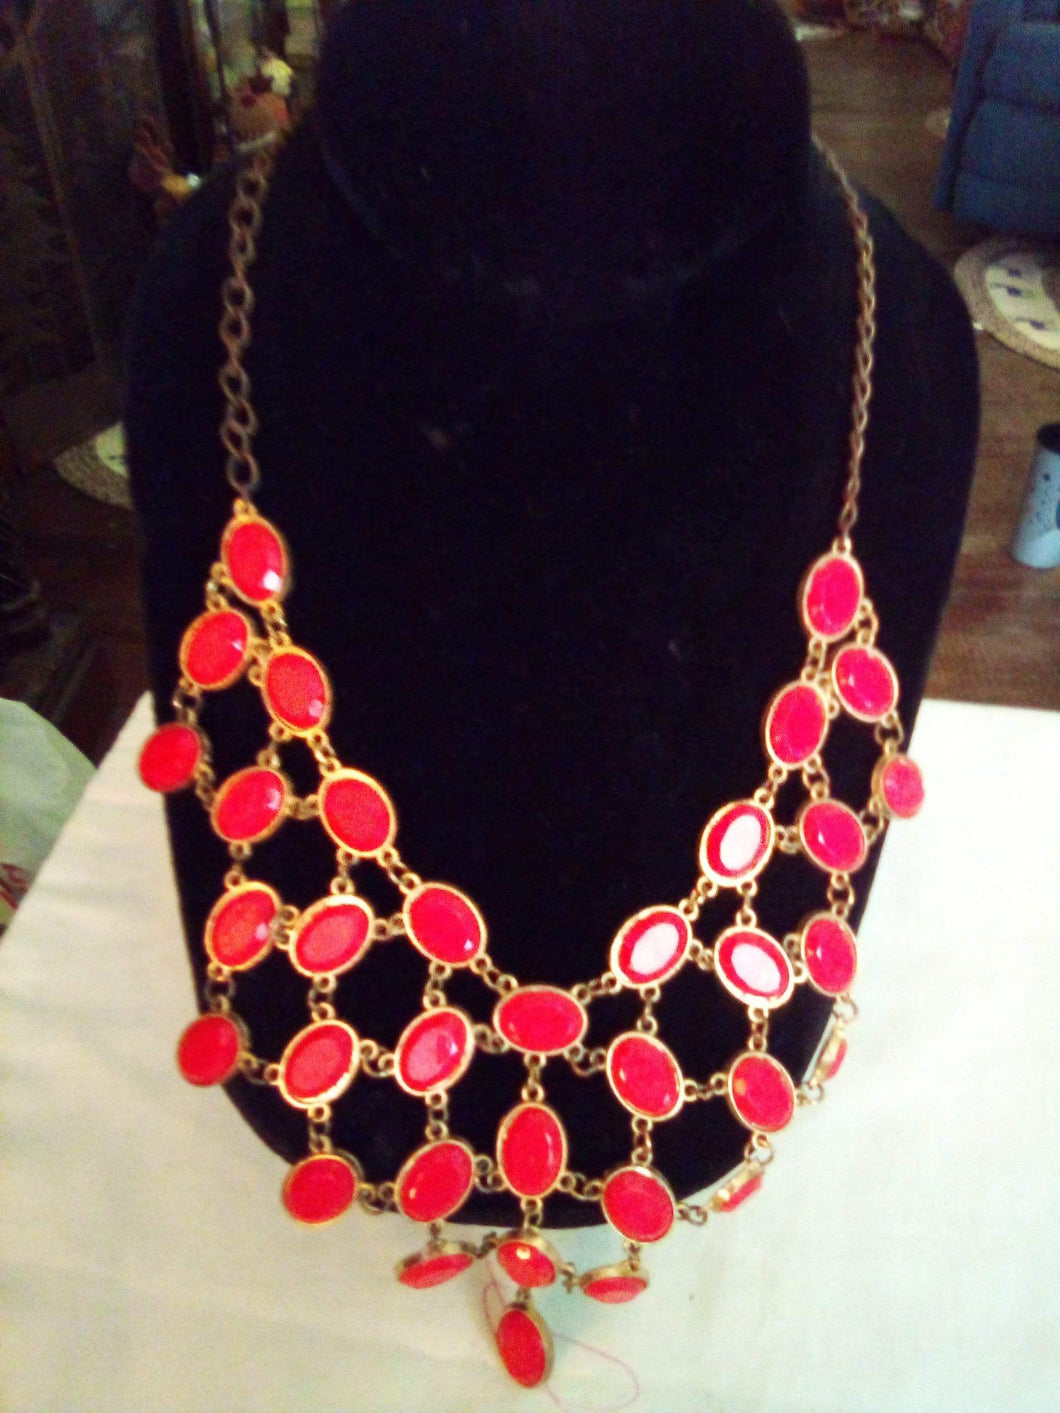 Vintage dressy necklace with red design - B&P'sringsnthings